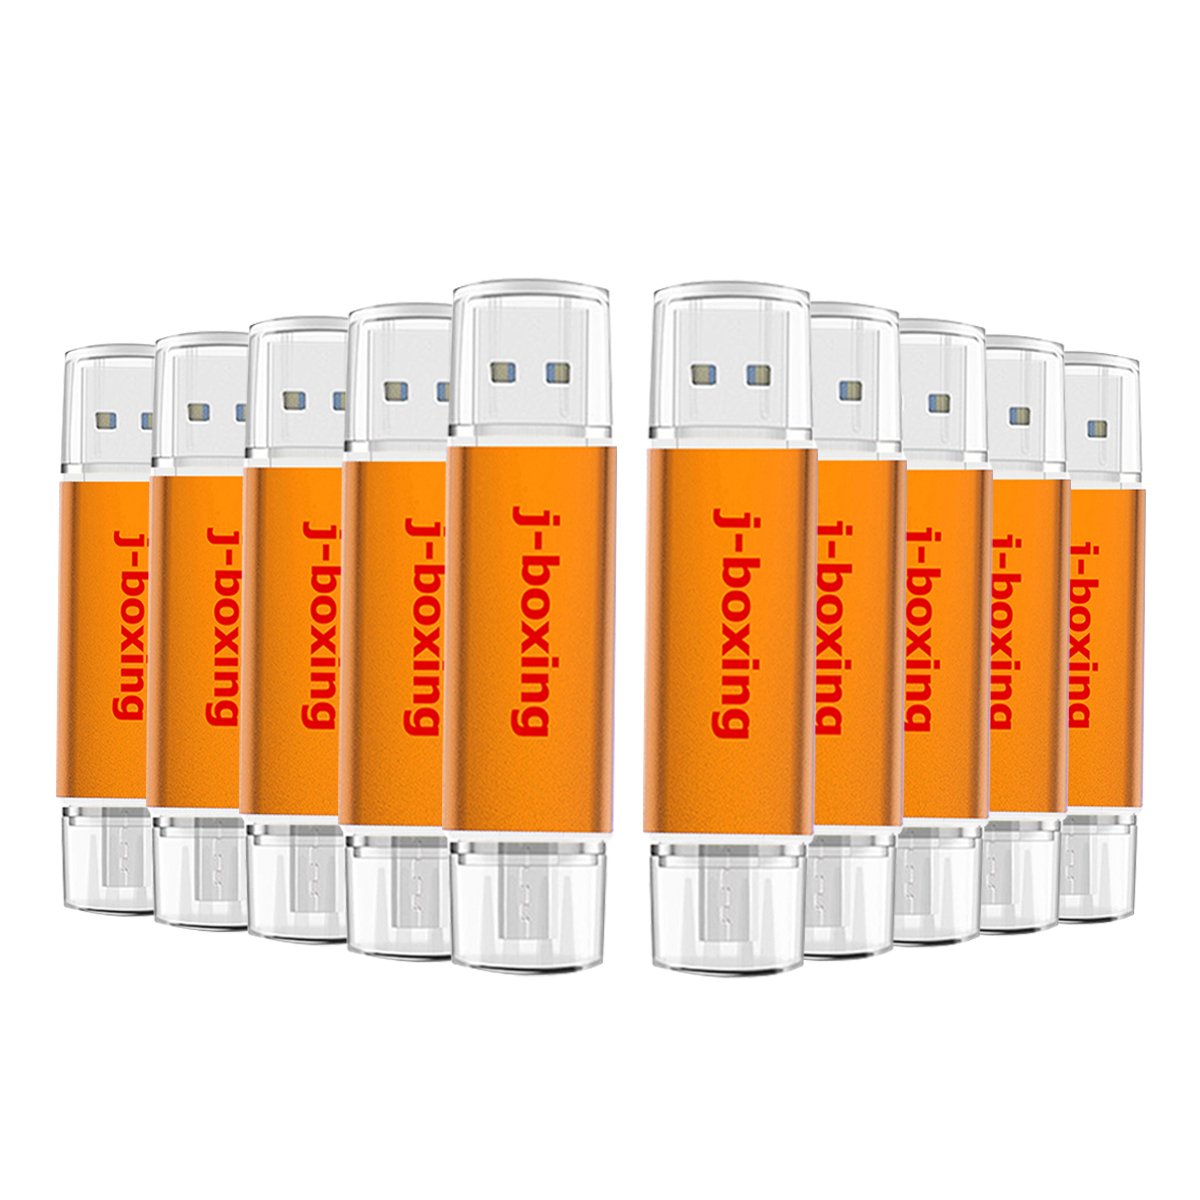 J boxing OTG USB Flash Drive 32GB 16GB 8GB 4GB Pendrives Micro USB 2 0 Memory Stick for Android Phone PC Multi color 10PCS pack in USB Flash Drives from Computer Office